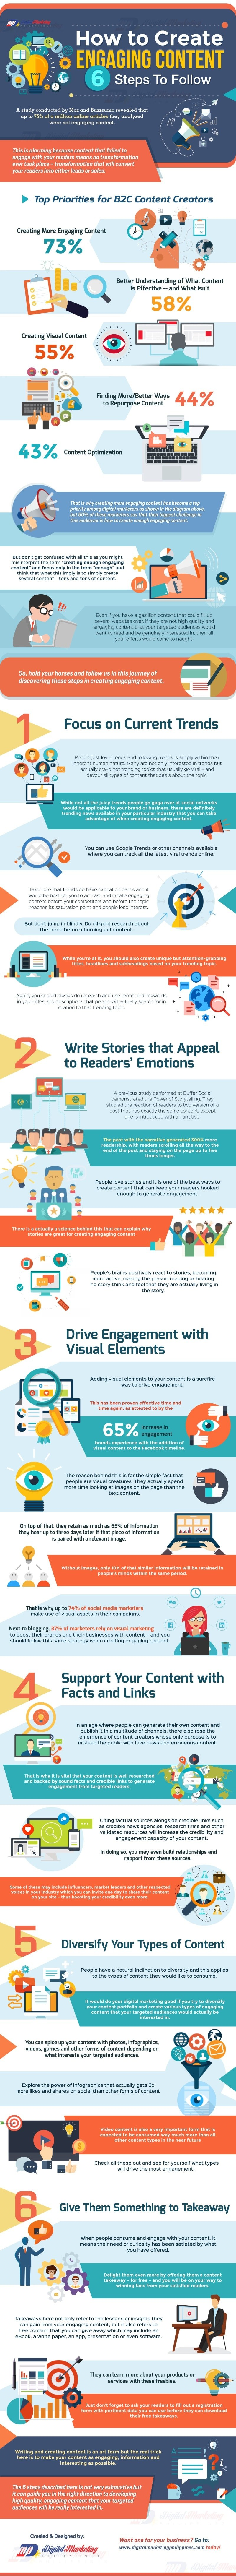 6 Steps Guide To Create Engaging Content